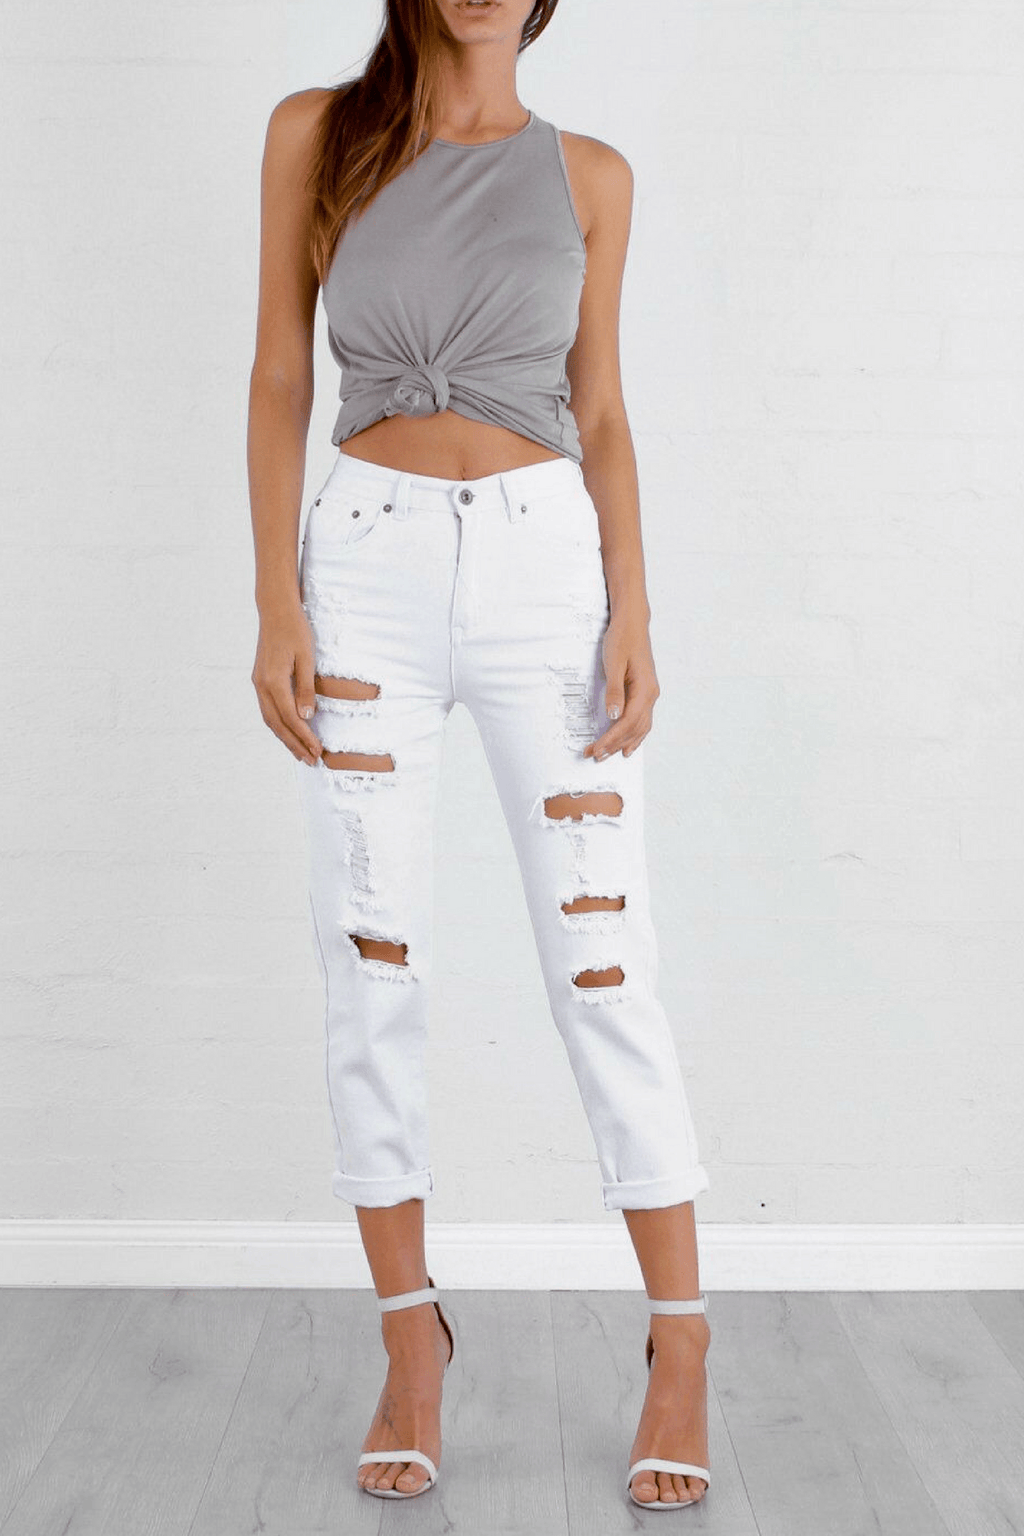 Misguided White Ripped Jeans